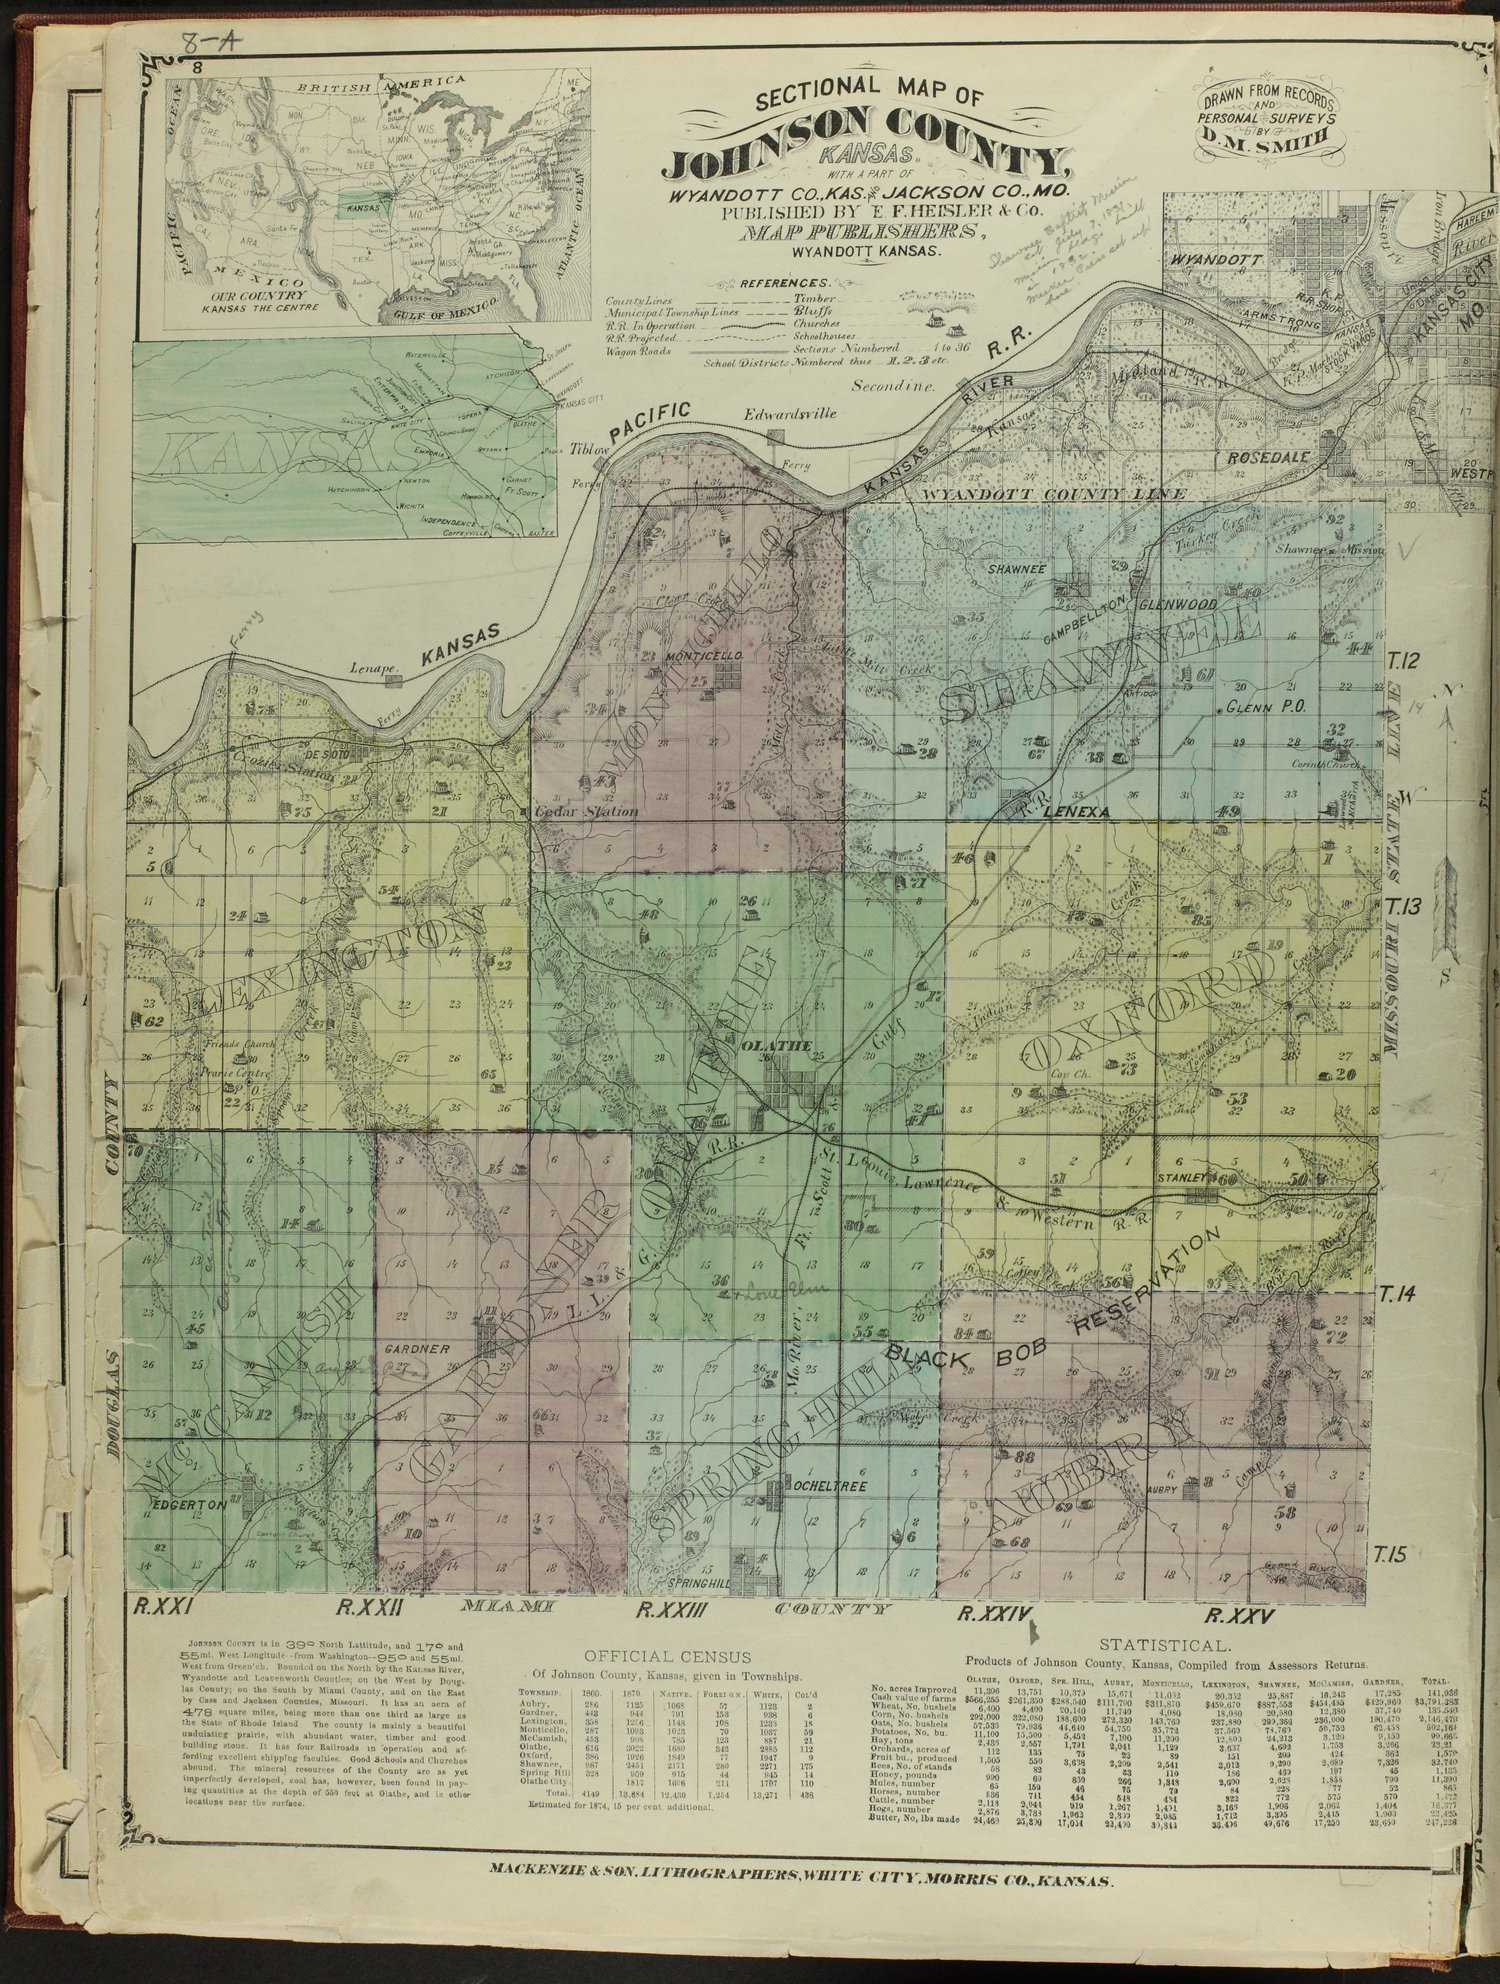 Atlas map of Johnson County, Kansas - 8